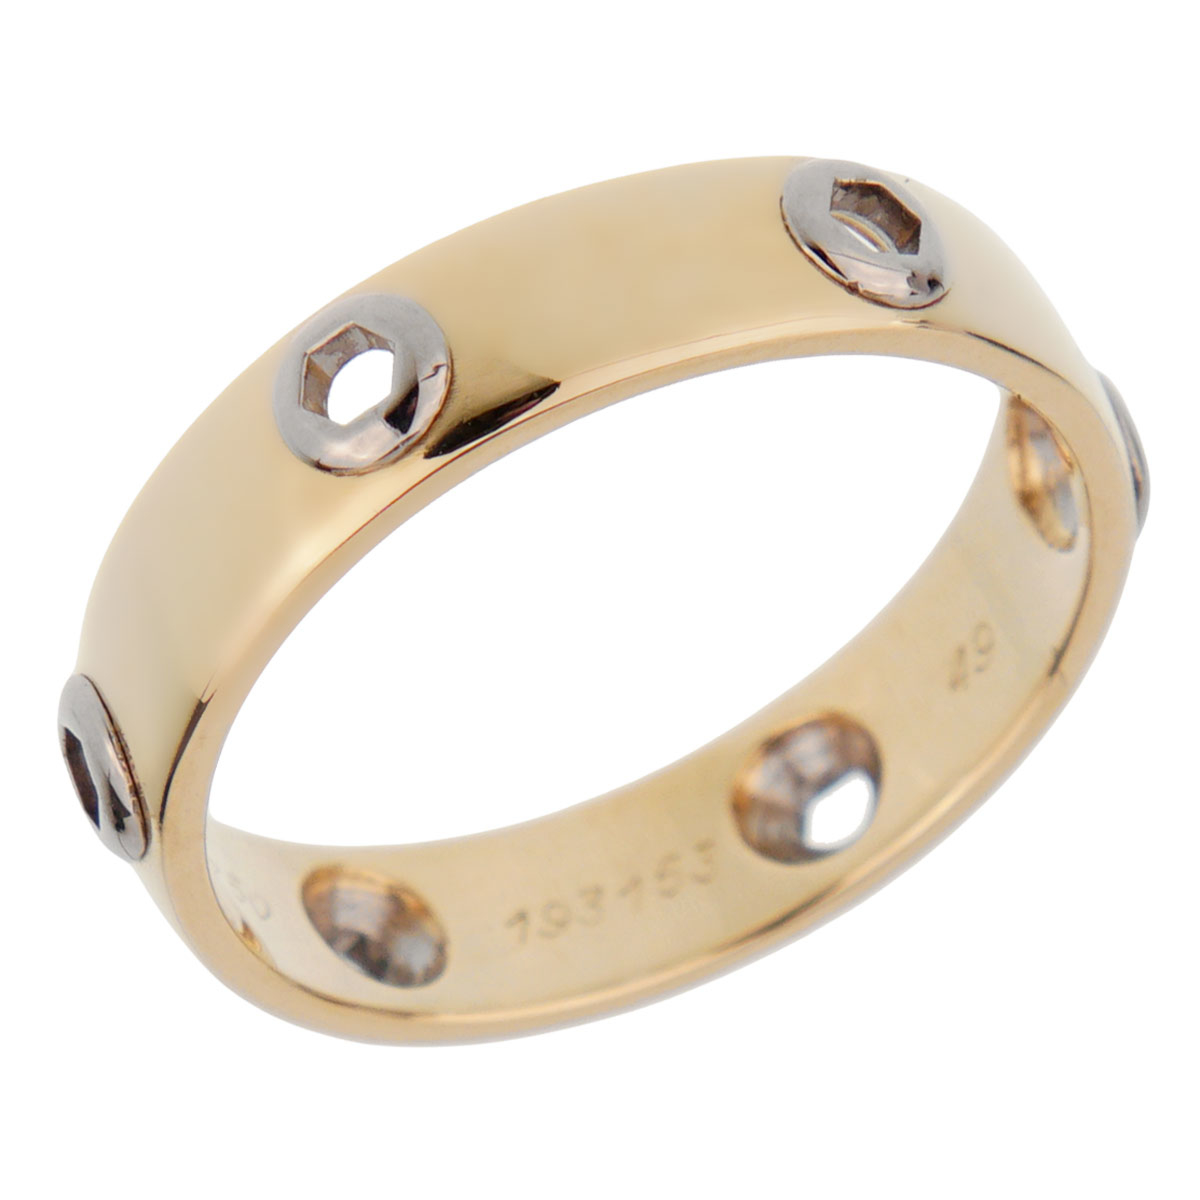 Cartier Love Series Yellow Gold Band Ring - Cartier Jewelry